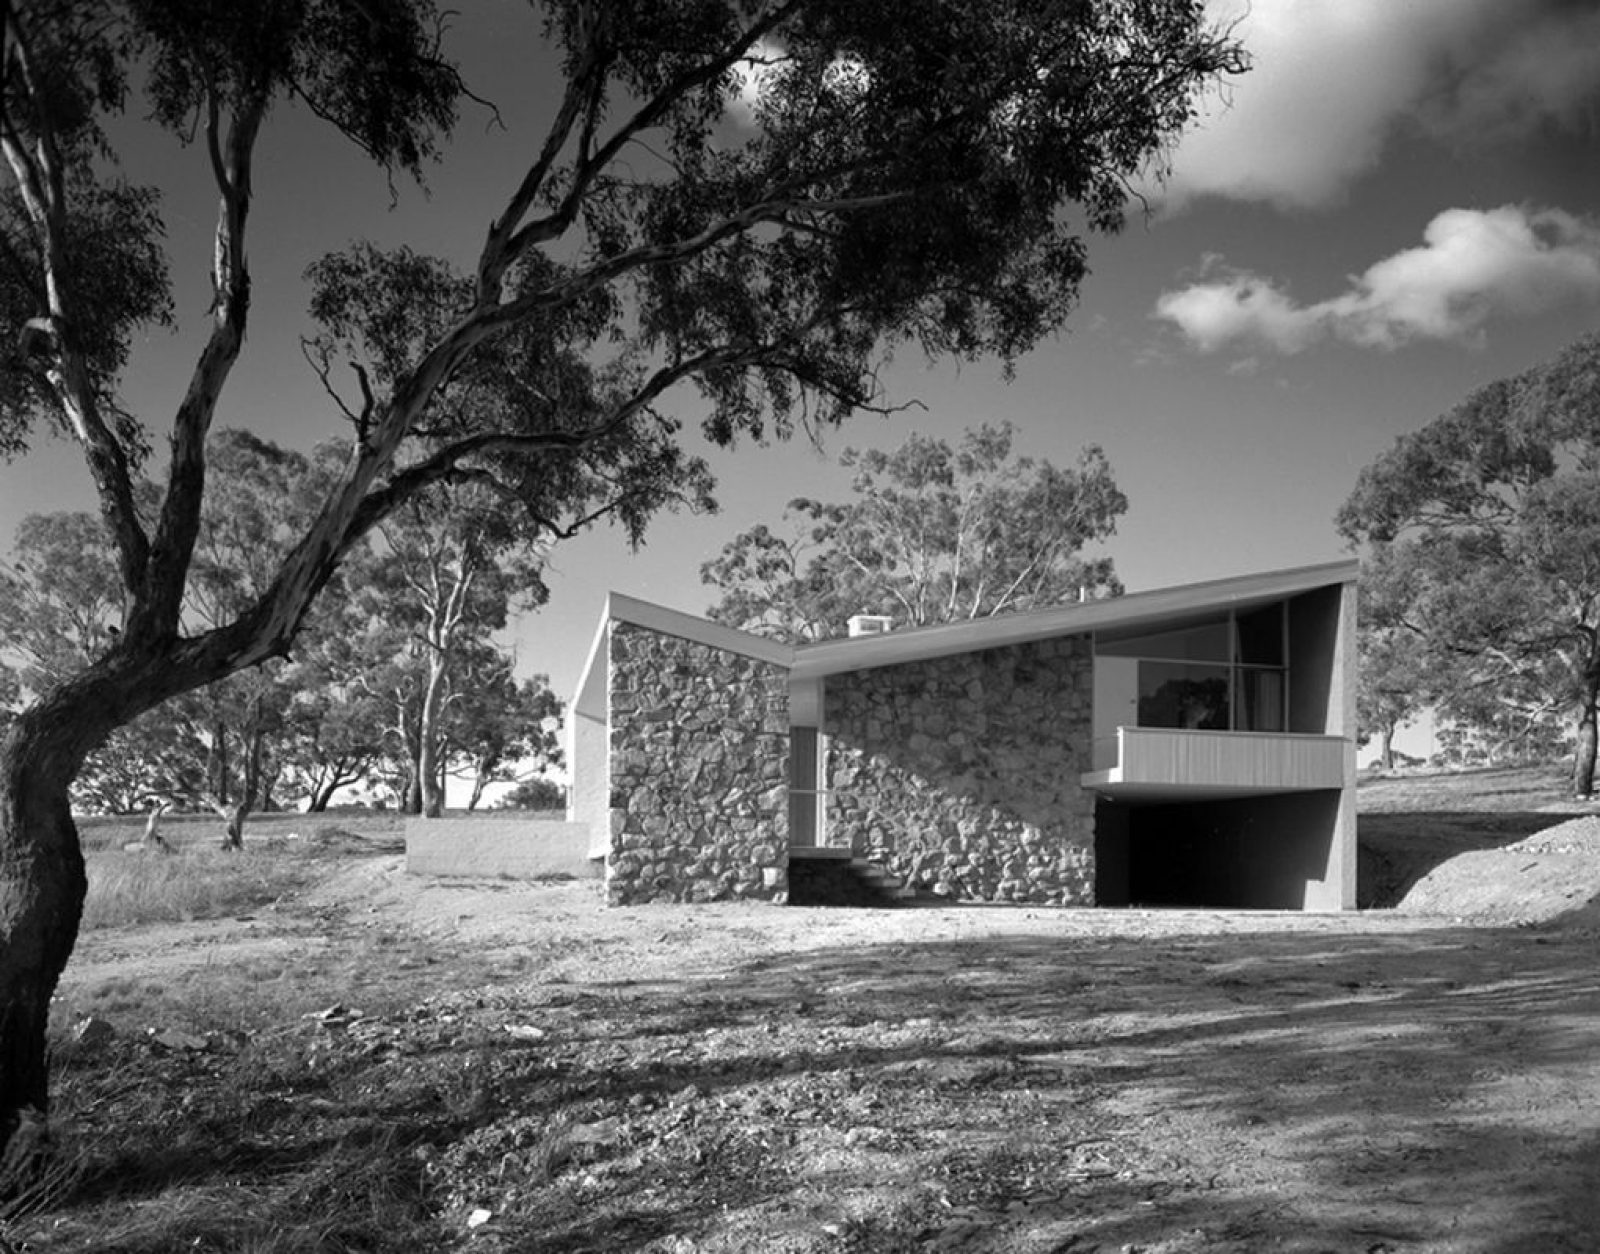 Bowden House, Deakin ACT. Architect Harry Seidler, 1954. Photo Max Dupain 1954 © Penelope Seidler